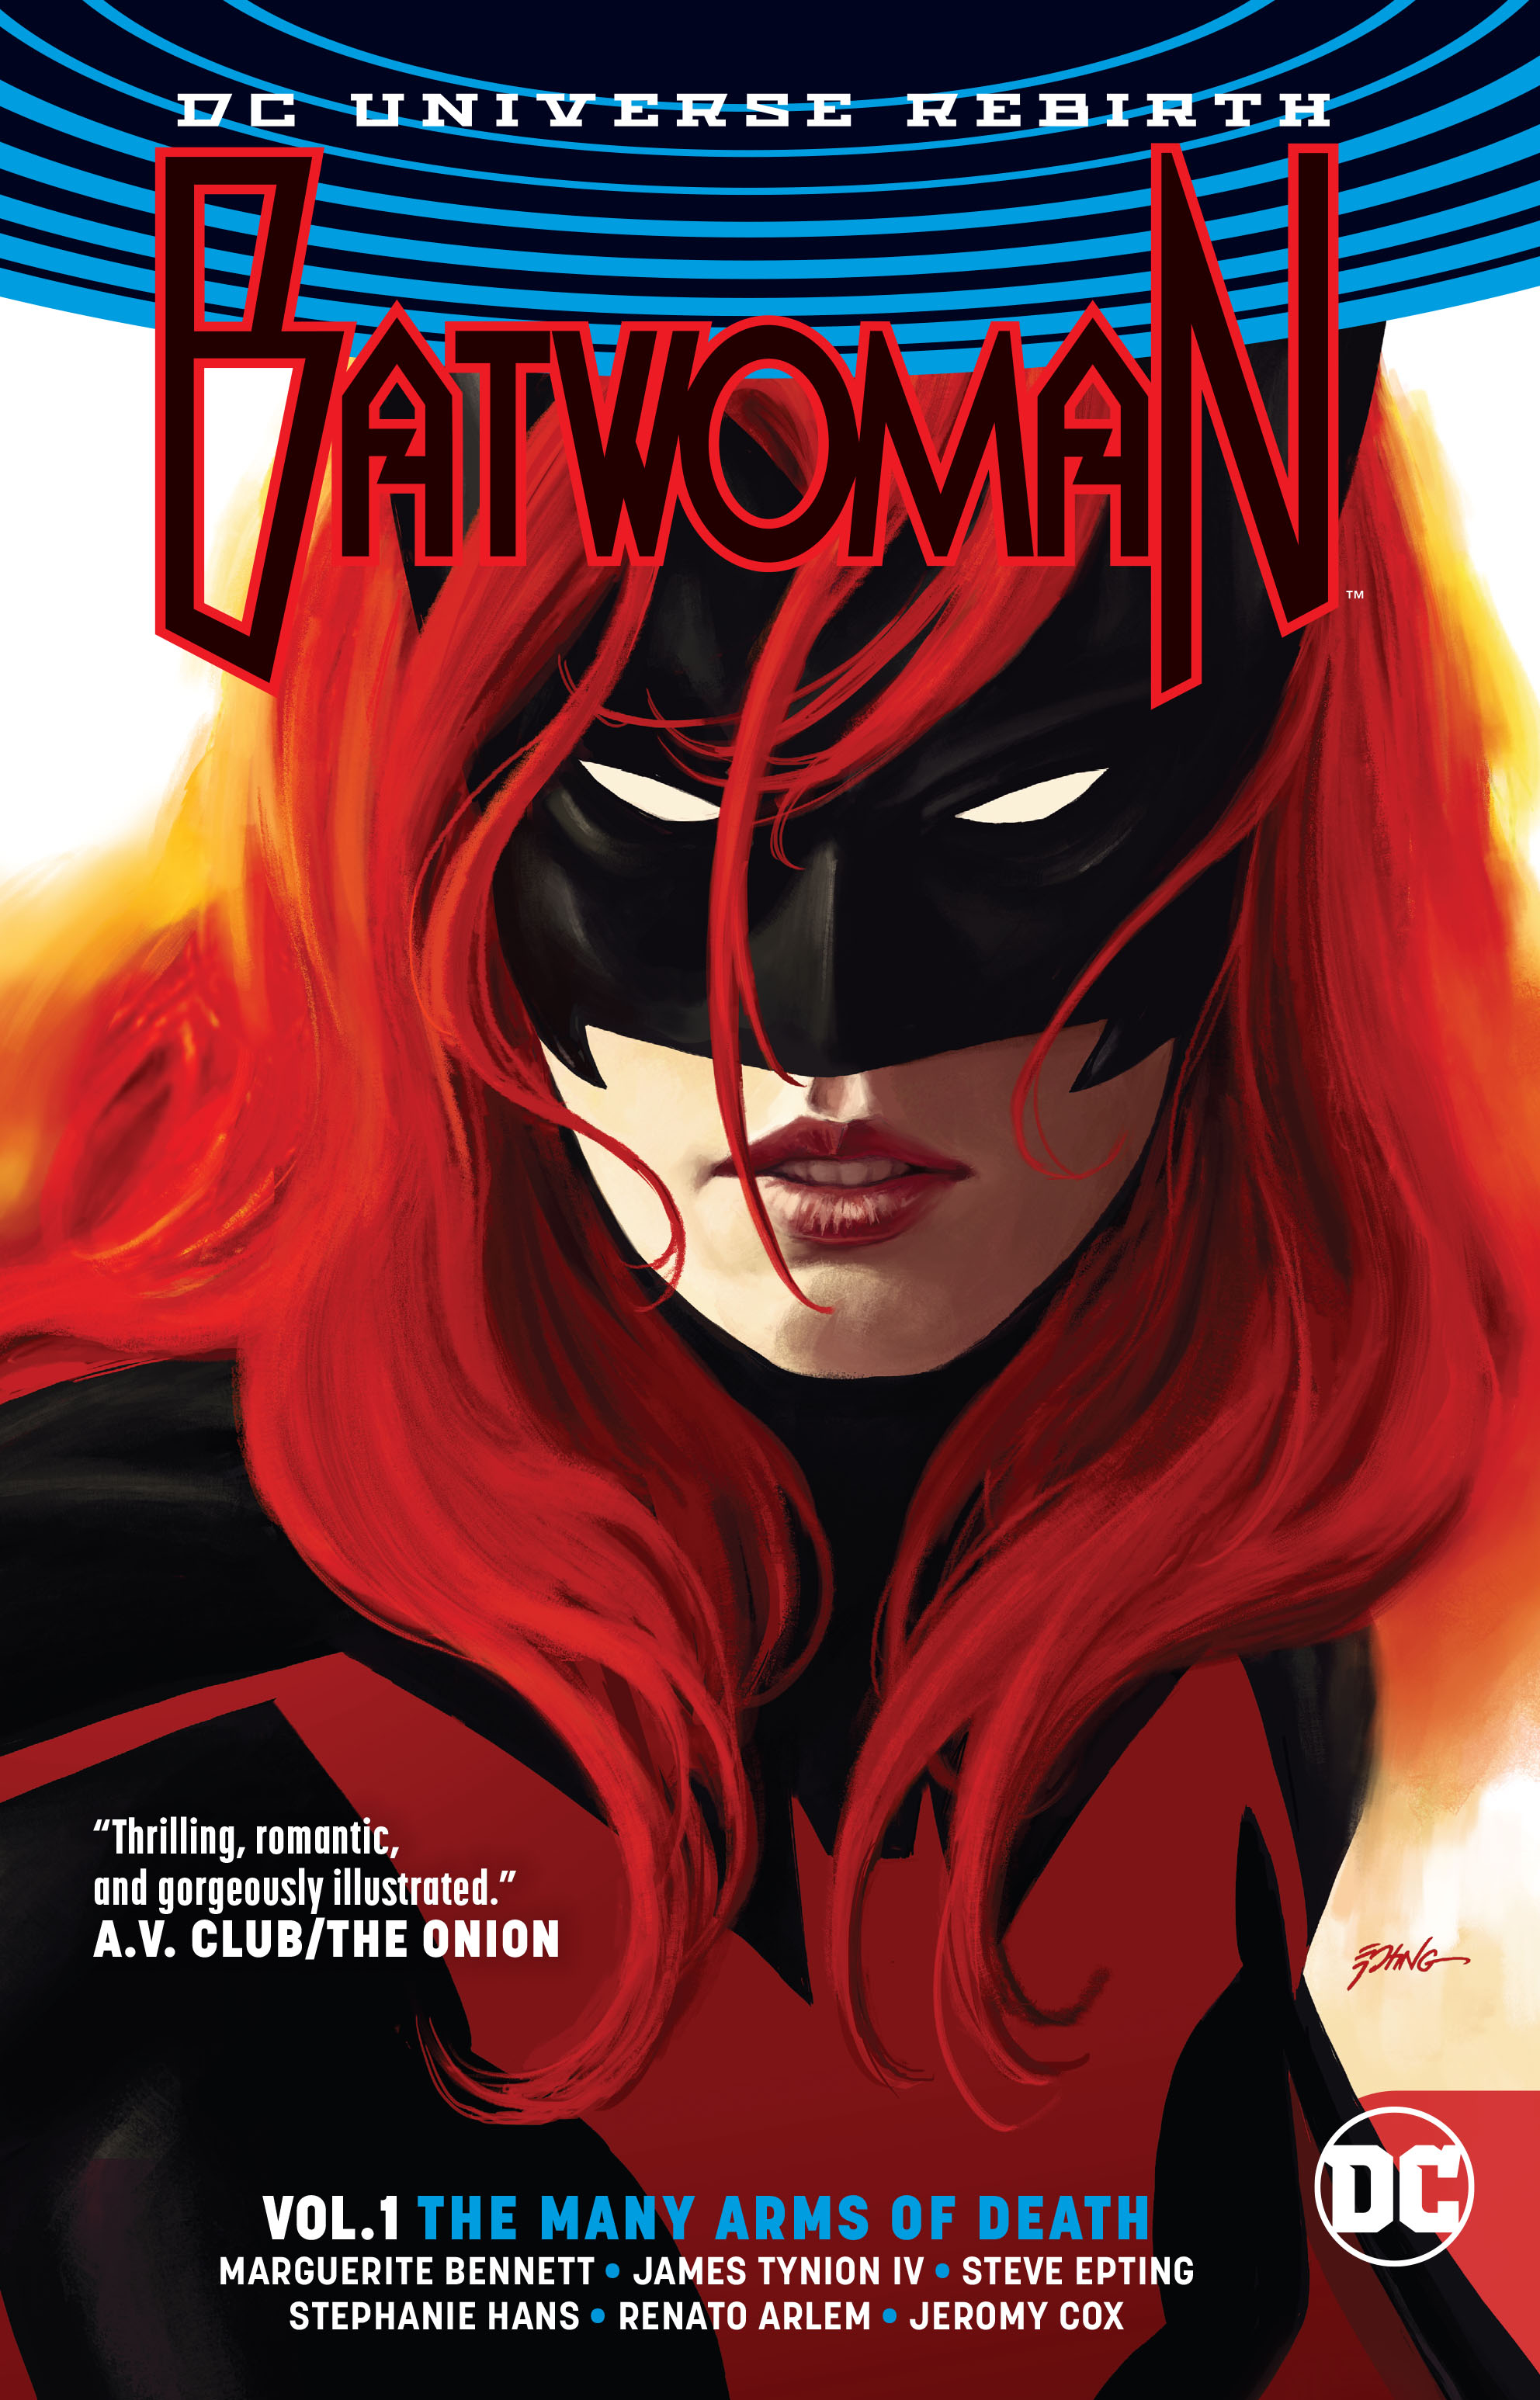 BATWOMAN TP VOL 01 THE MANY ARMS OF DEATH (REBIRTH) (AUG1703